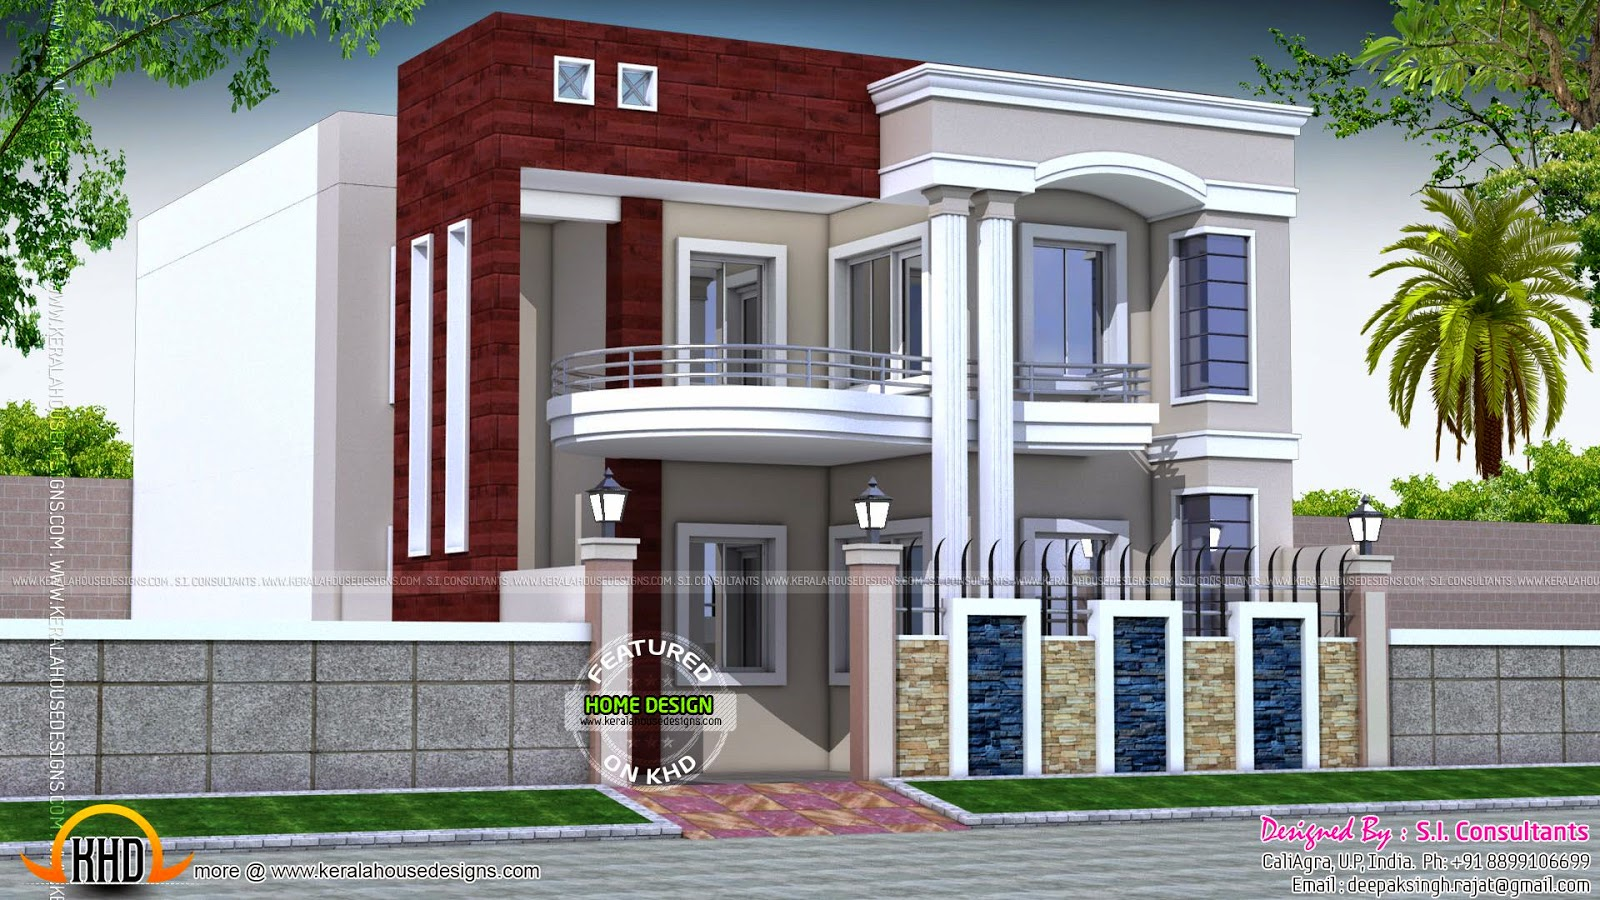 House design in north india kerala home design and floor for Home front design in indian style